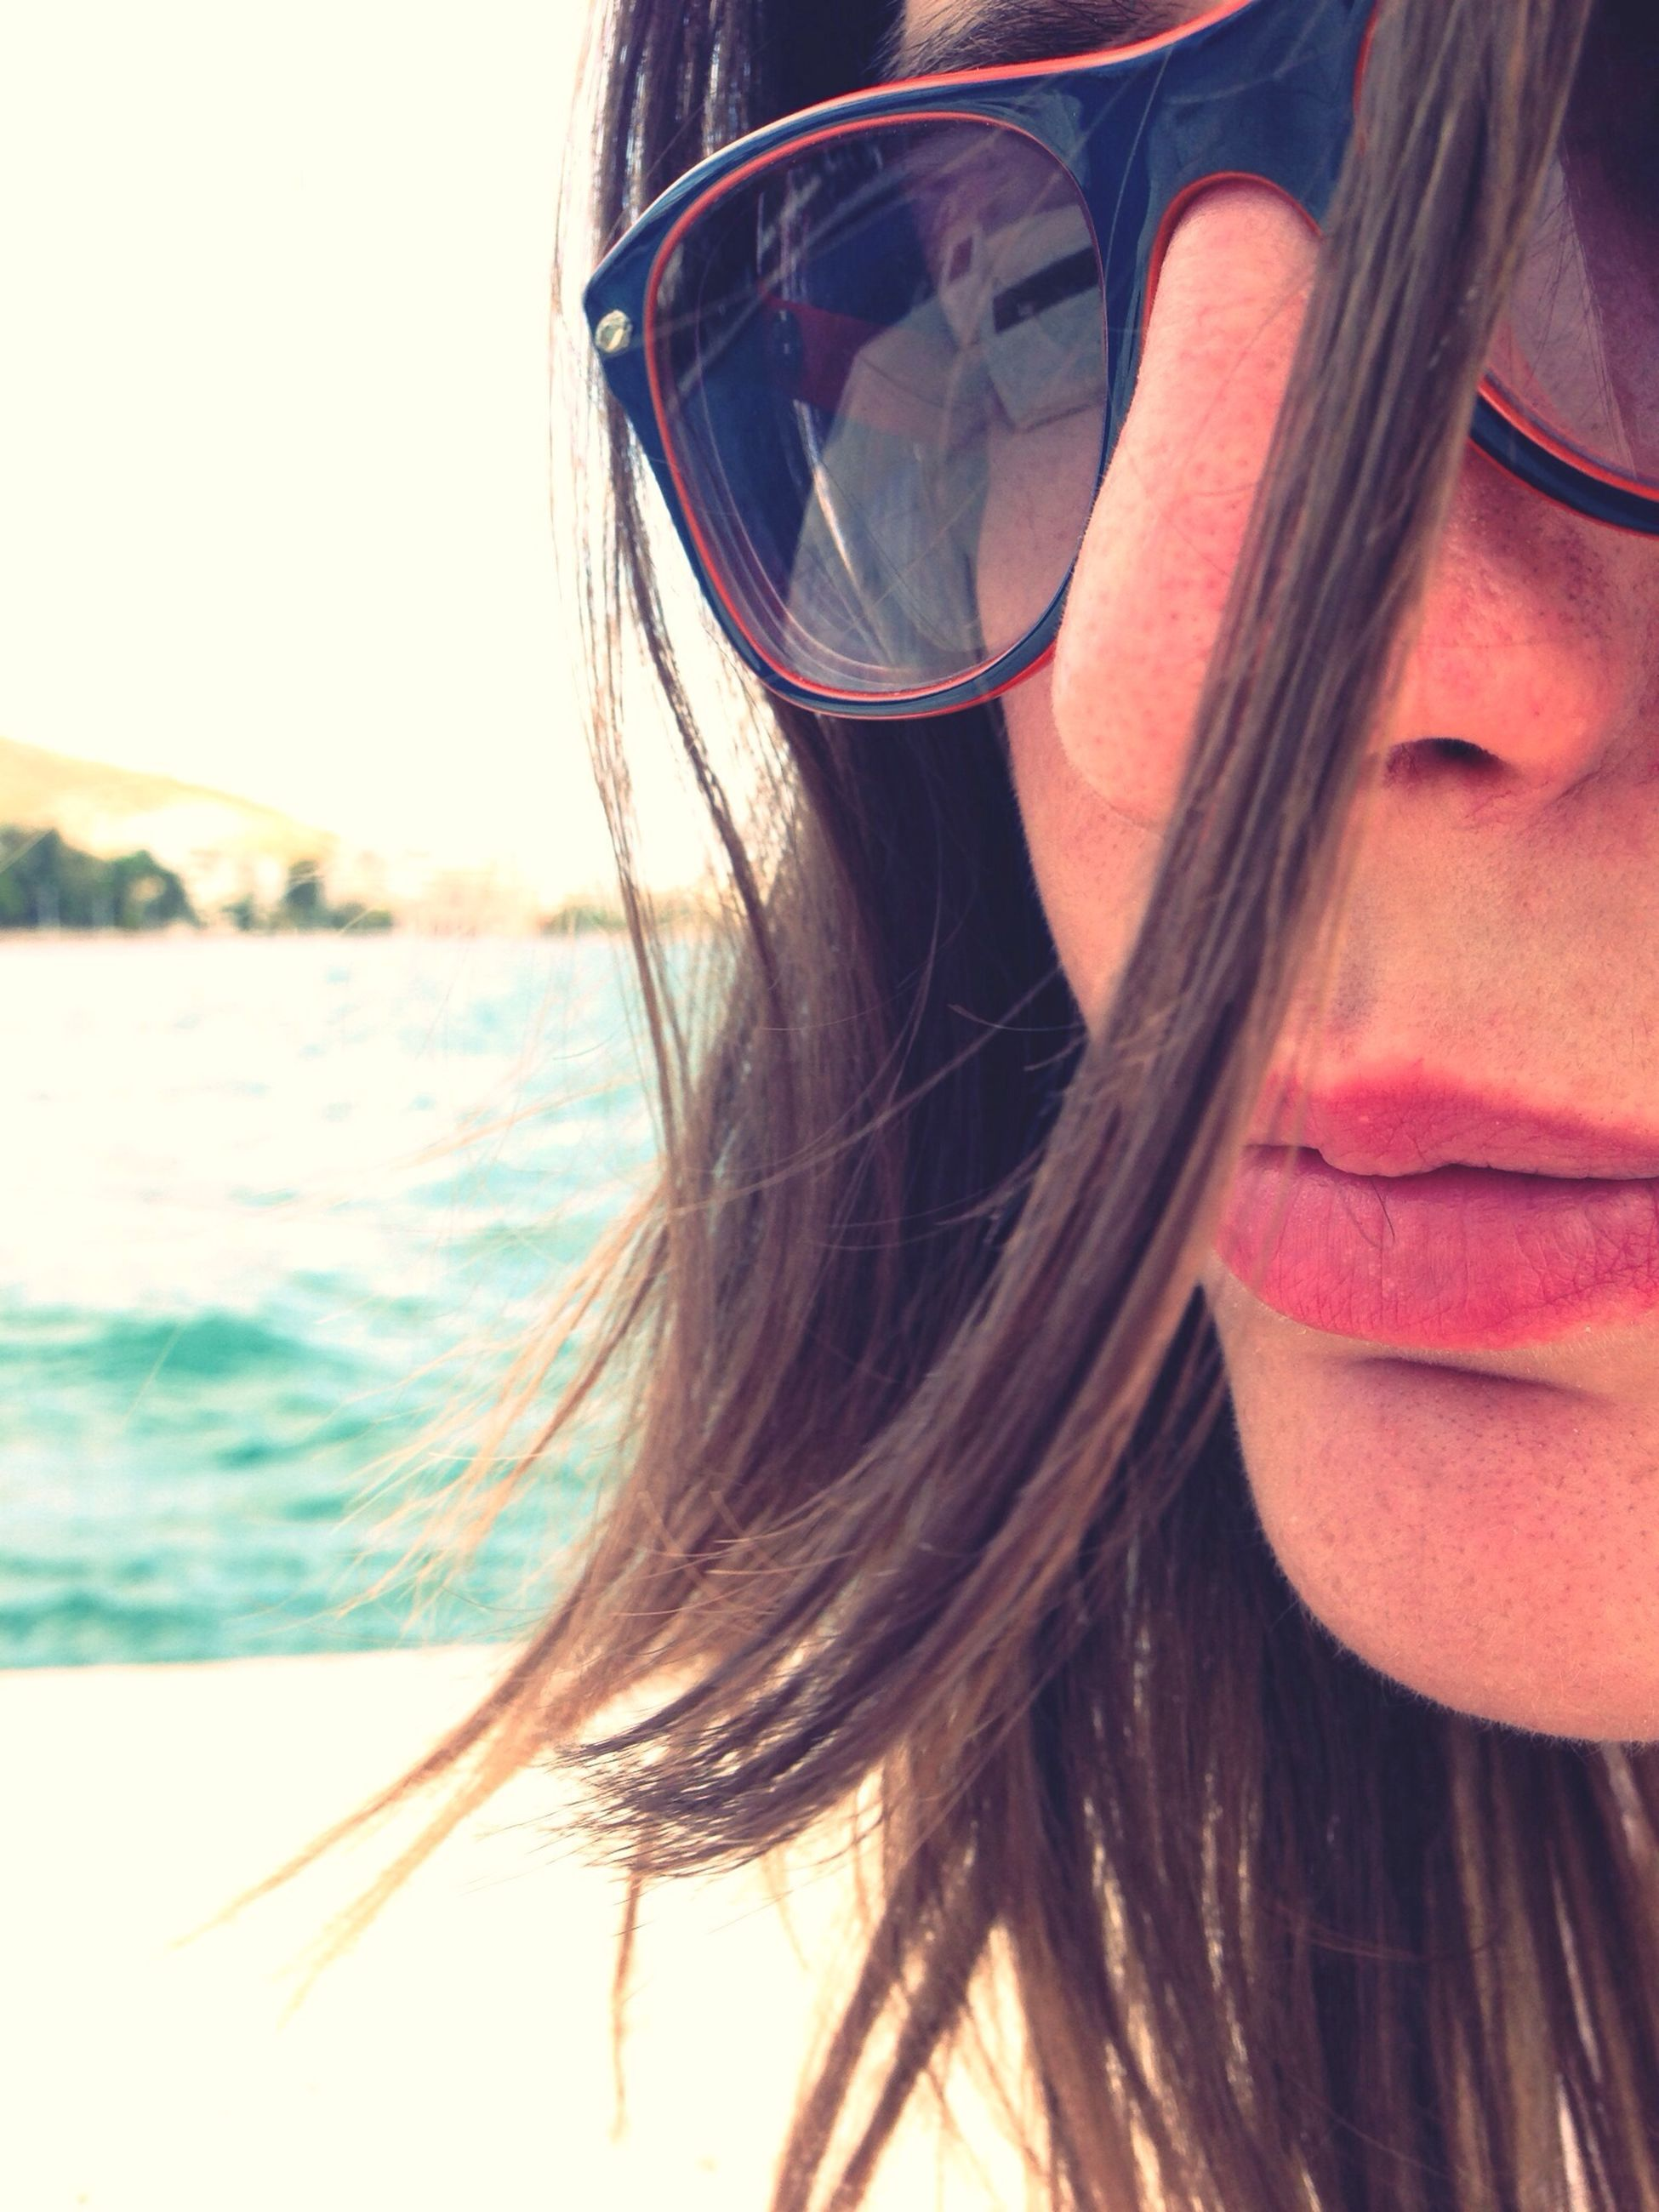 water, young adult, lifestyles, leisure activity, headshot, sea, young women, long hair, person, sunglasses, focus on foreground, vacations, close-up, beach, head and shoulders, brown hair